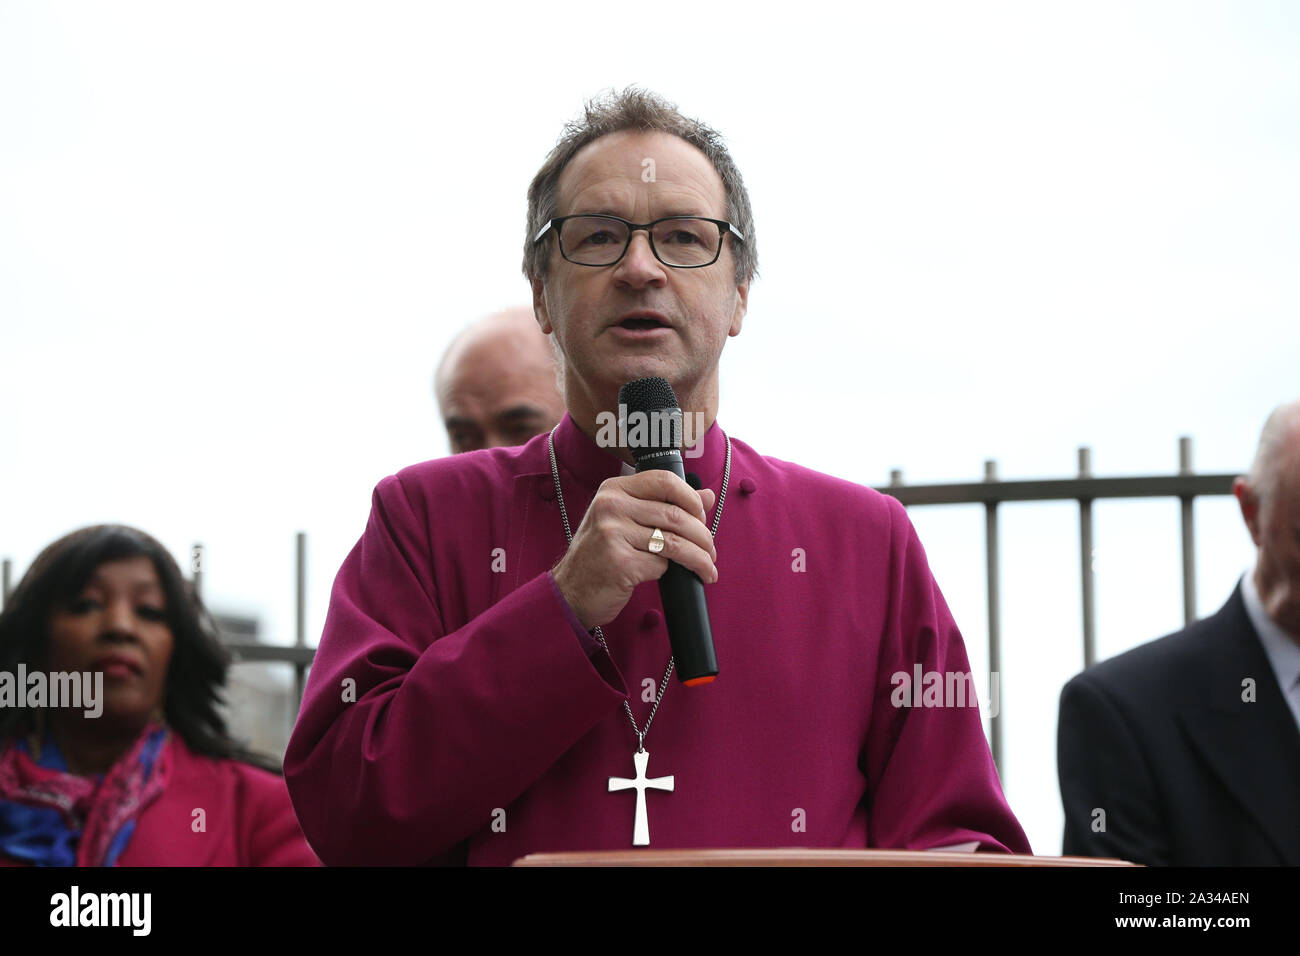 Bishop of Kensington Graham Tomlin conducting a service at the memorial garden overlooking the railway line at Ladbroke Grove on the 20th anniversary of the Paddington rail disaster where a total of 31 people died when two trains collided almost head-on. Stock Photo